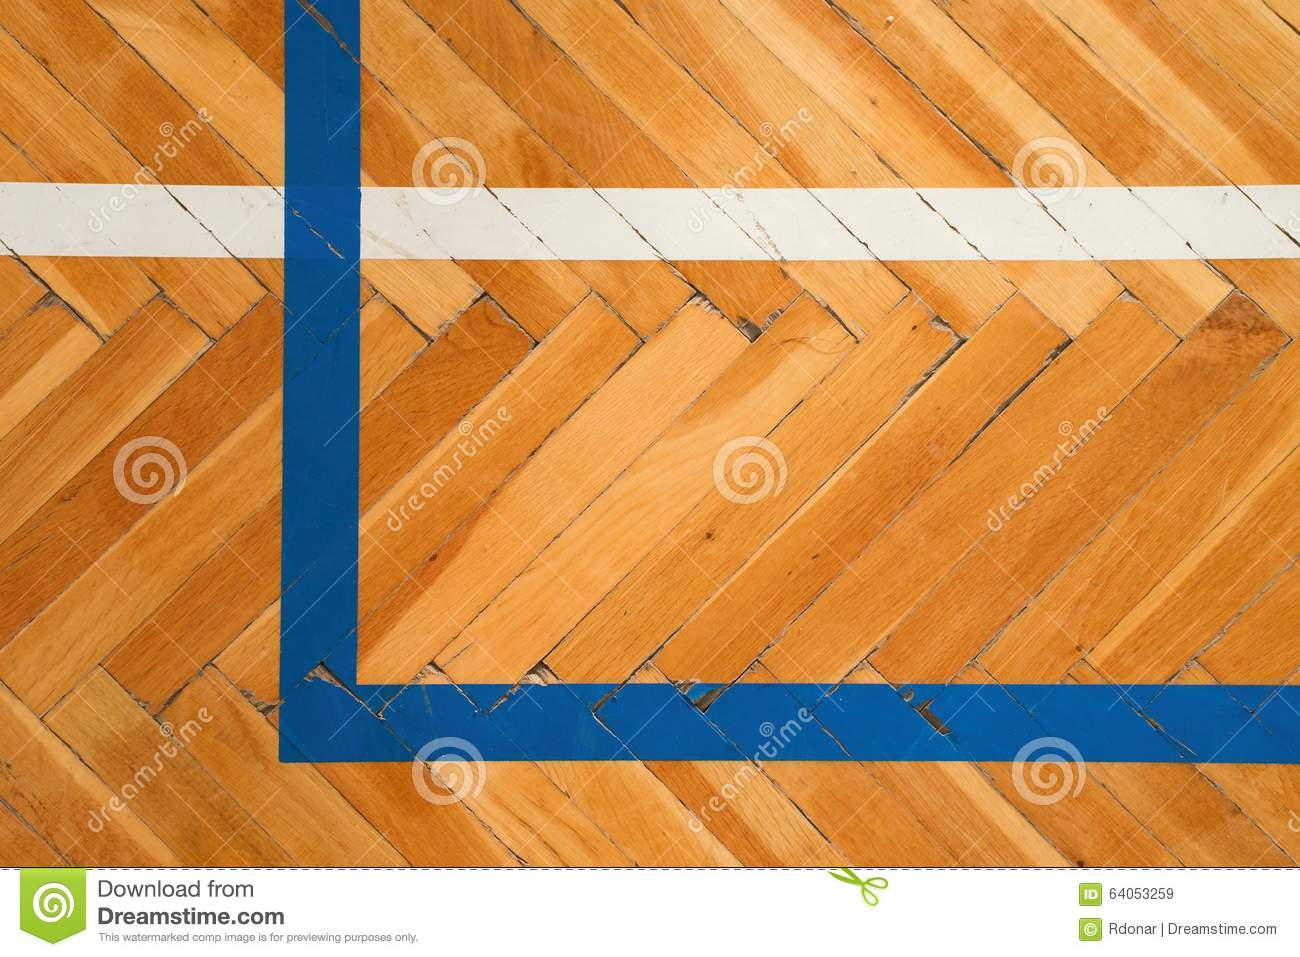 Blue white lines worn out wooden floor of sports hall Worn wood floors